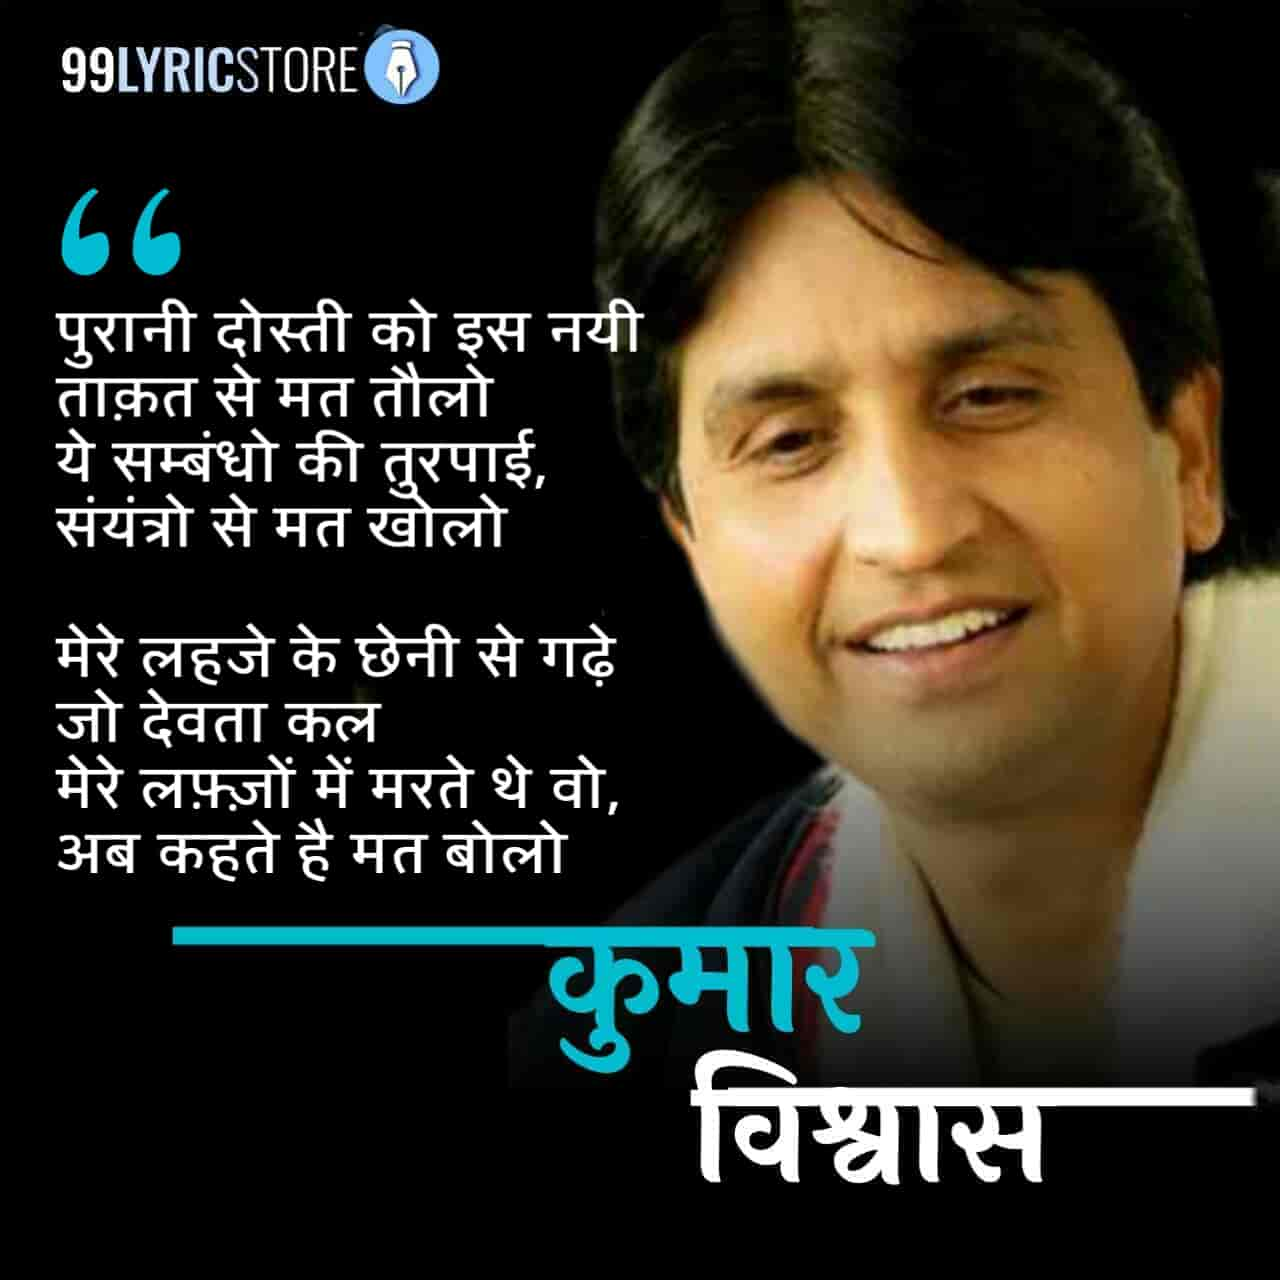 This beautiful Ghazal 'Jawani Mein Kayi Ghazalein' has written by Kumar Vishwas on Stage of KV Musical.